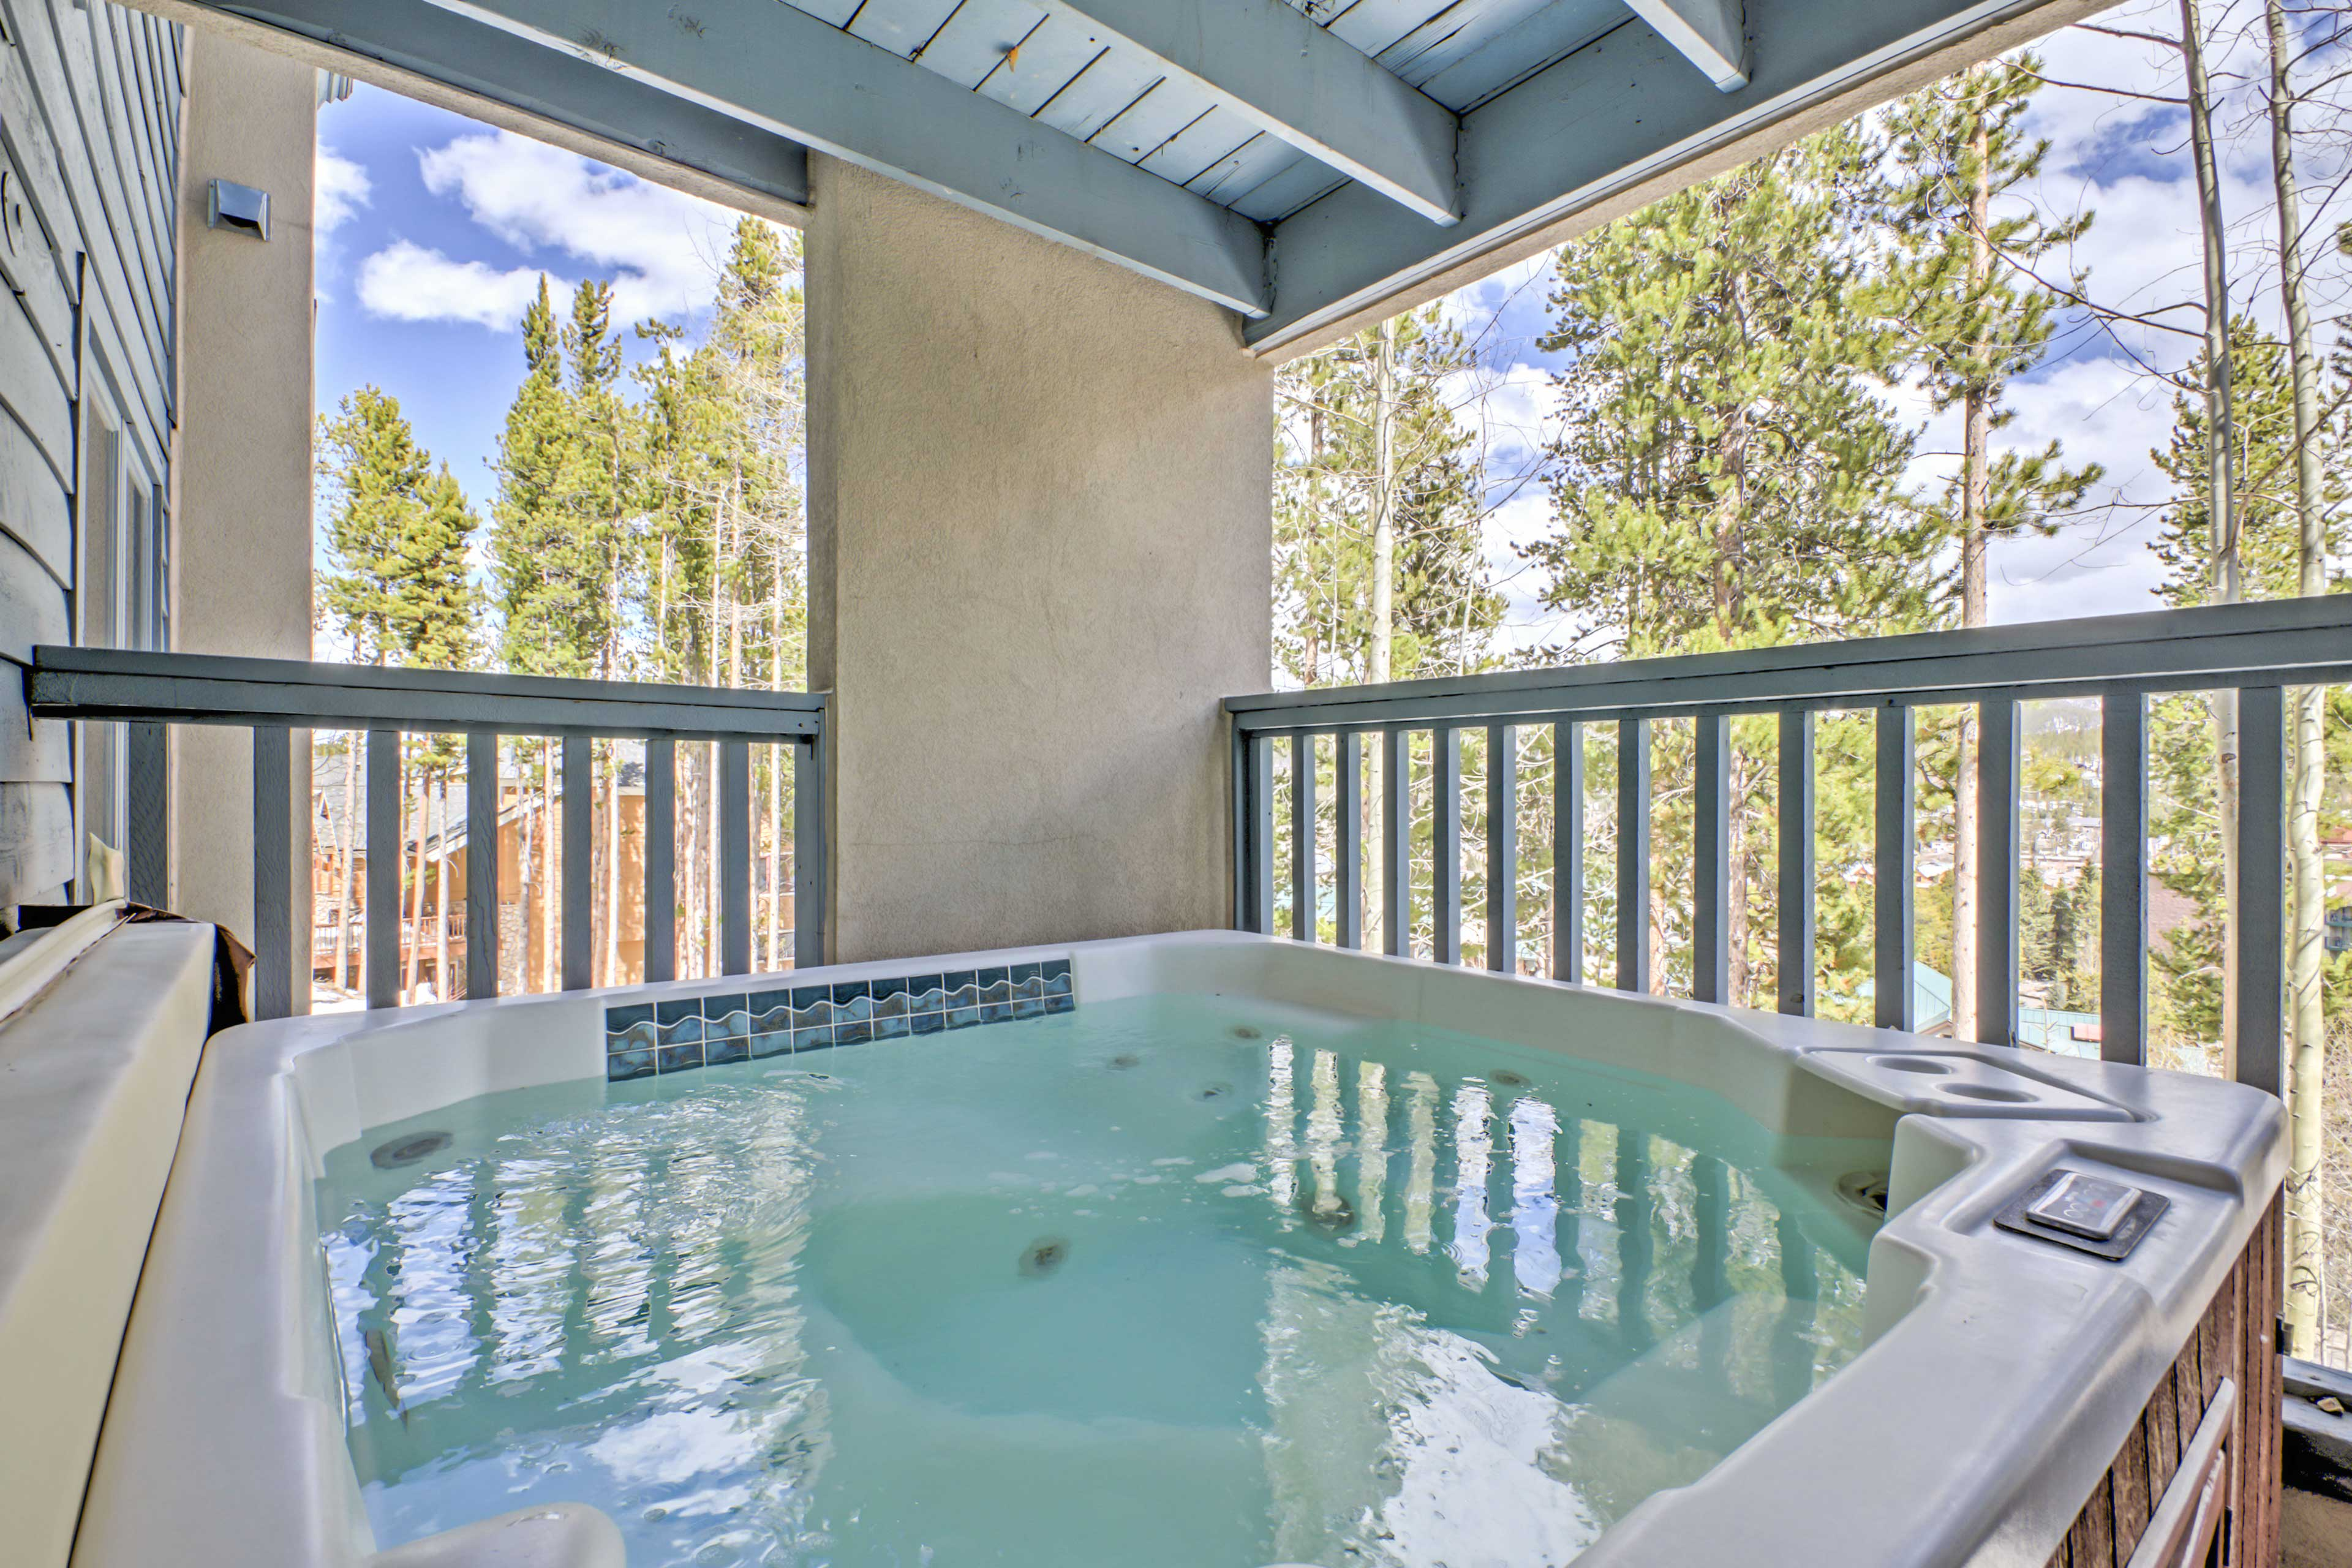 After days exploring the slopes, soak in your private hot tub.